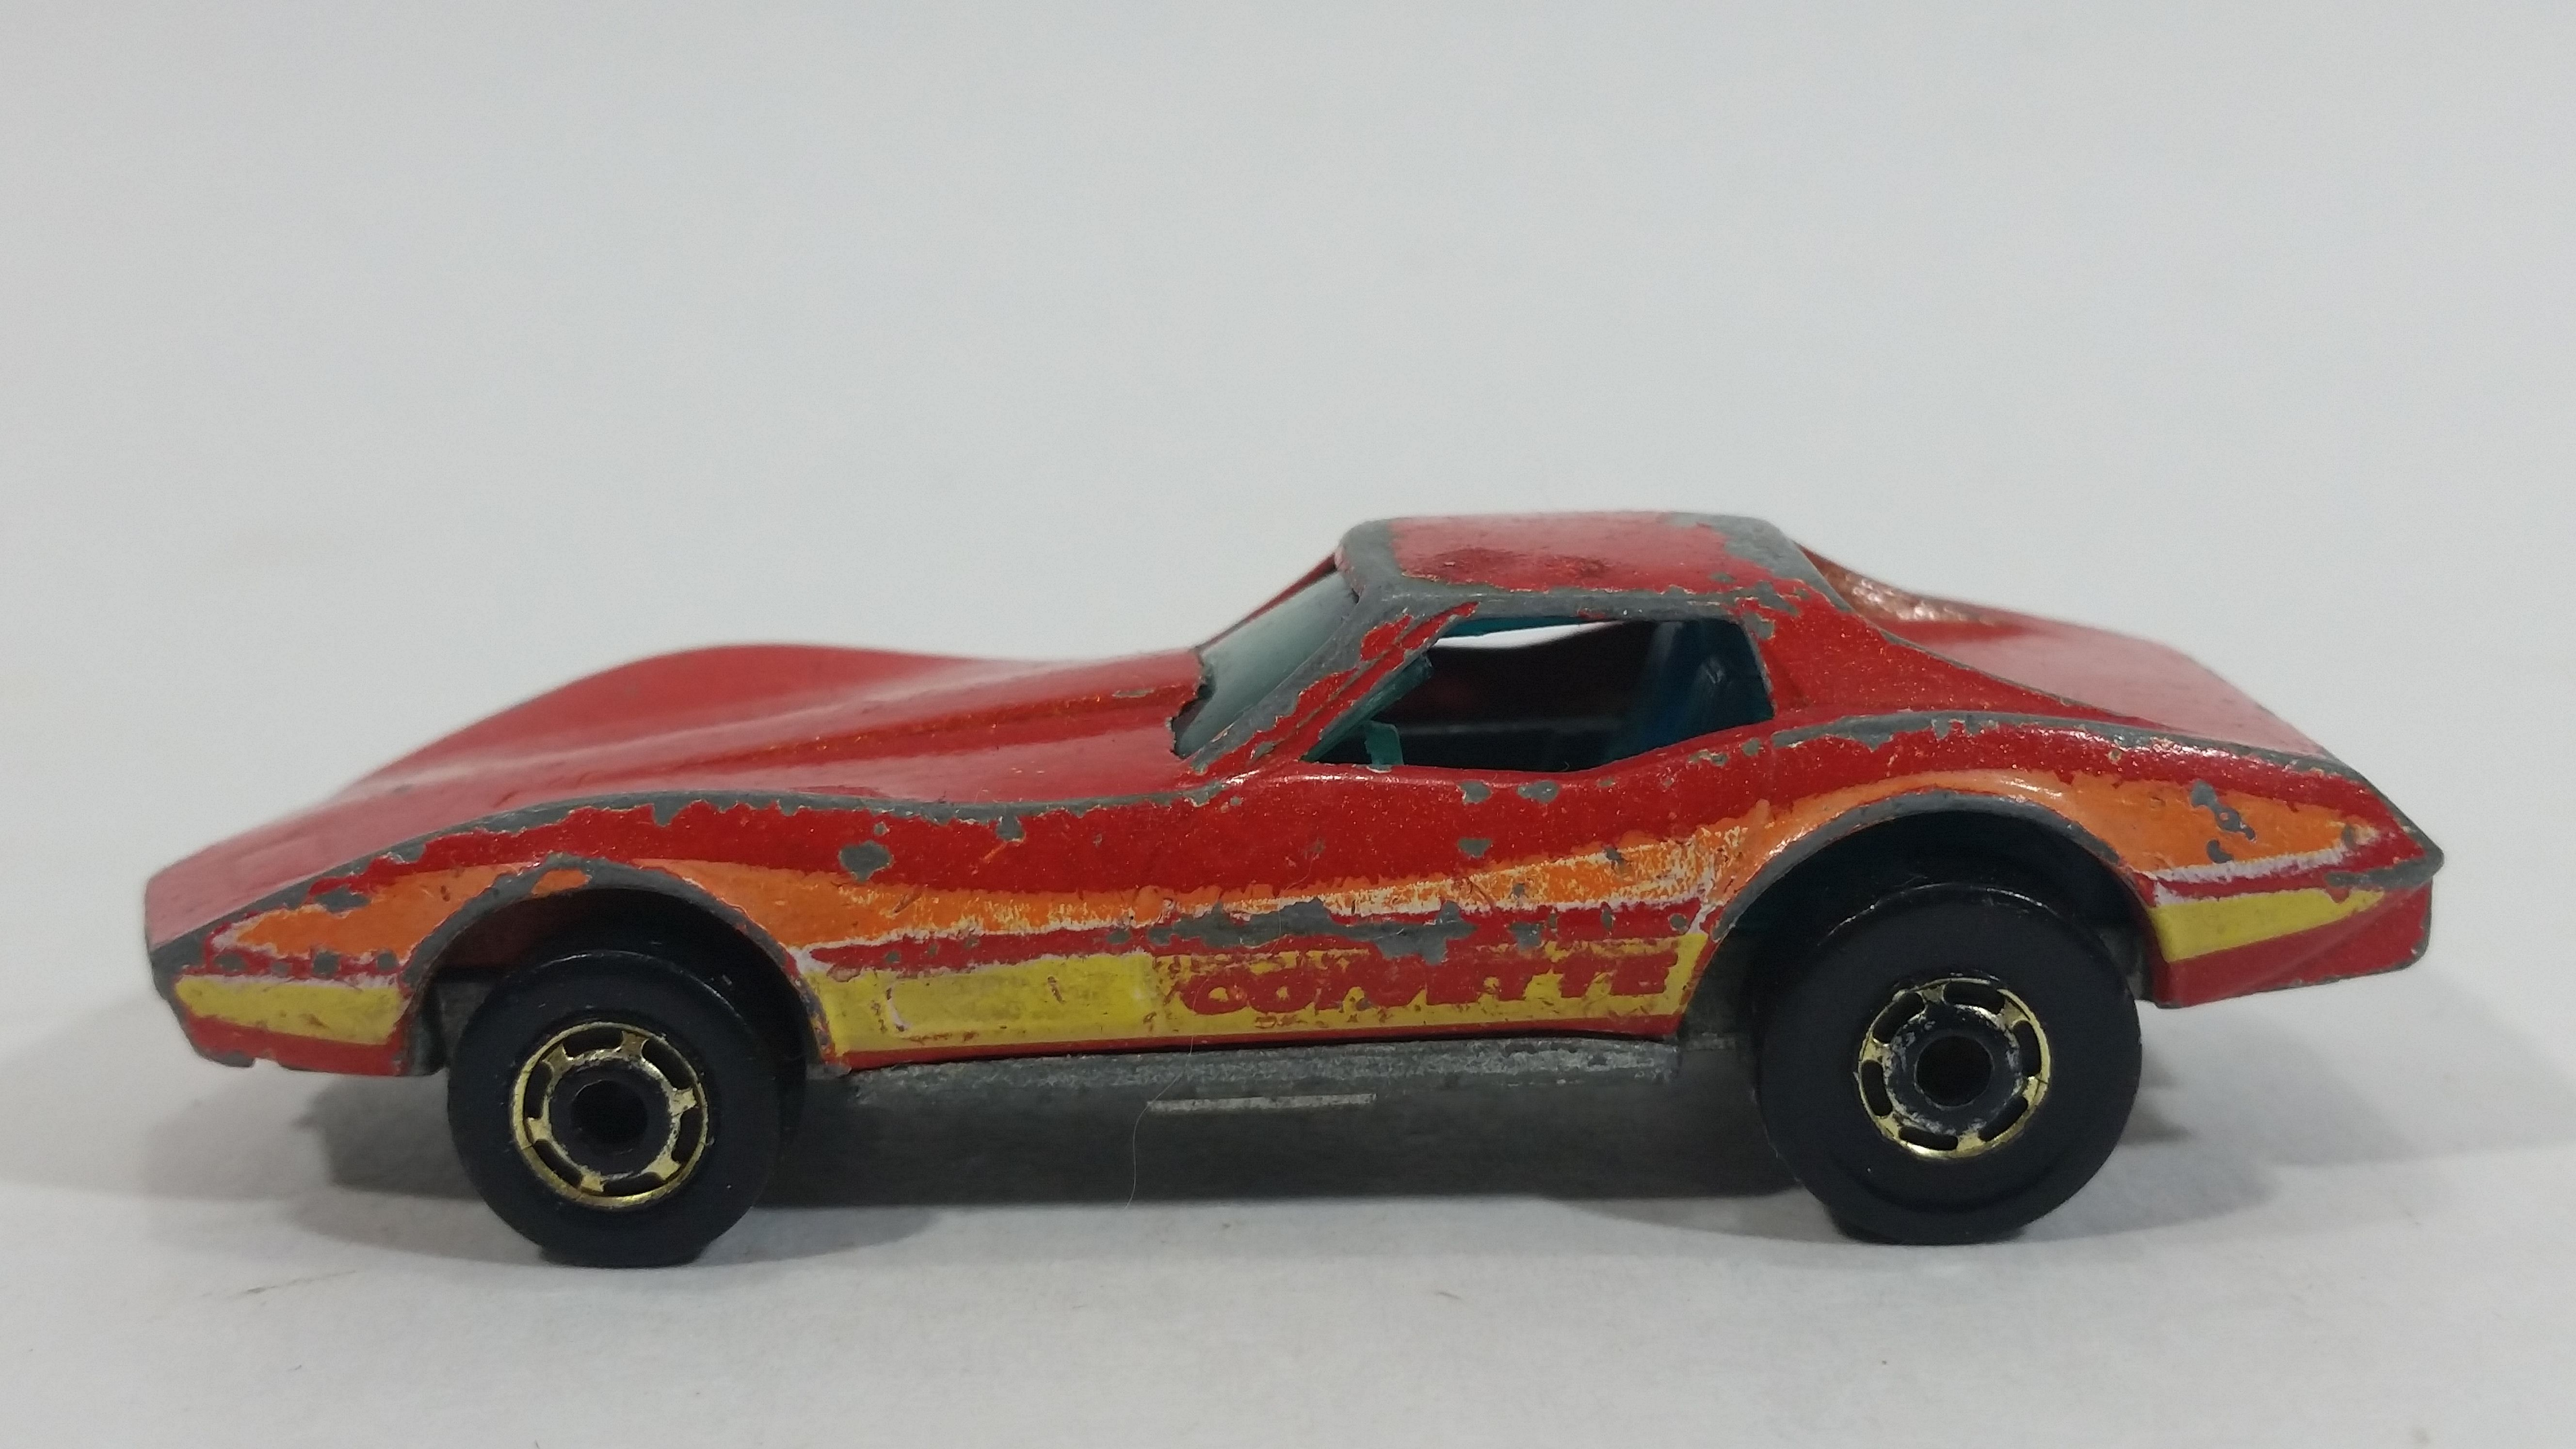 1982 Hot Wheels Gold Hot Ones Corvette Stingray Red Die Cast Toy Car Vehicle Hong Kong Toy Car Hot Wheels Toy Model Cars